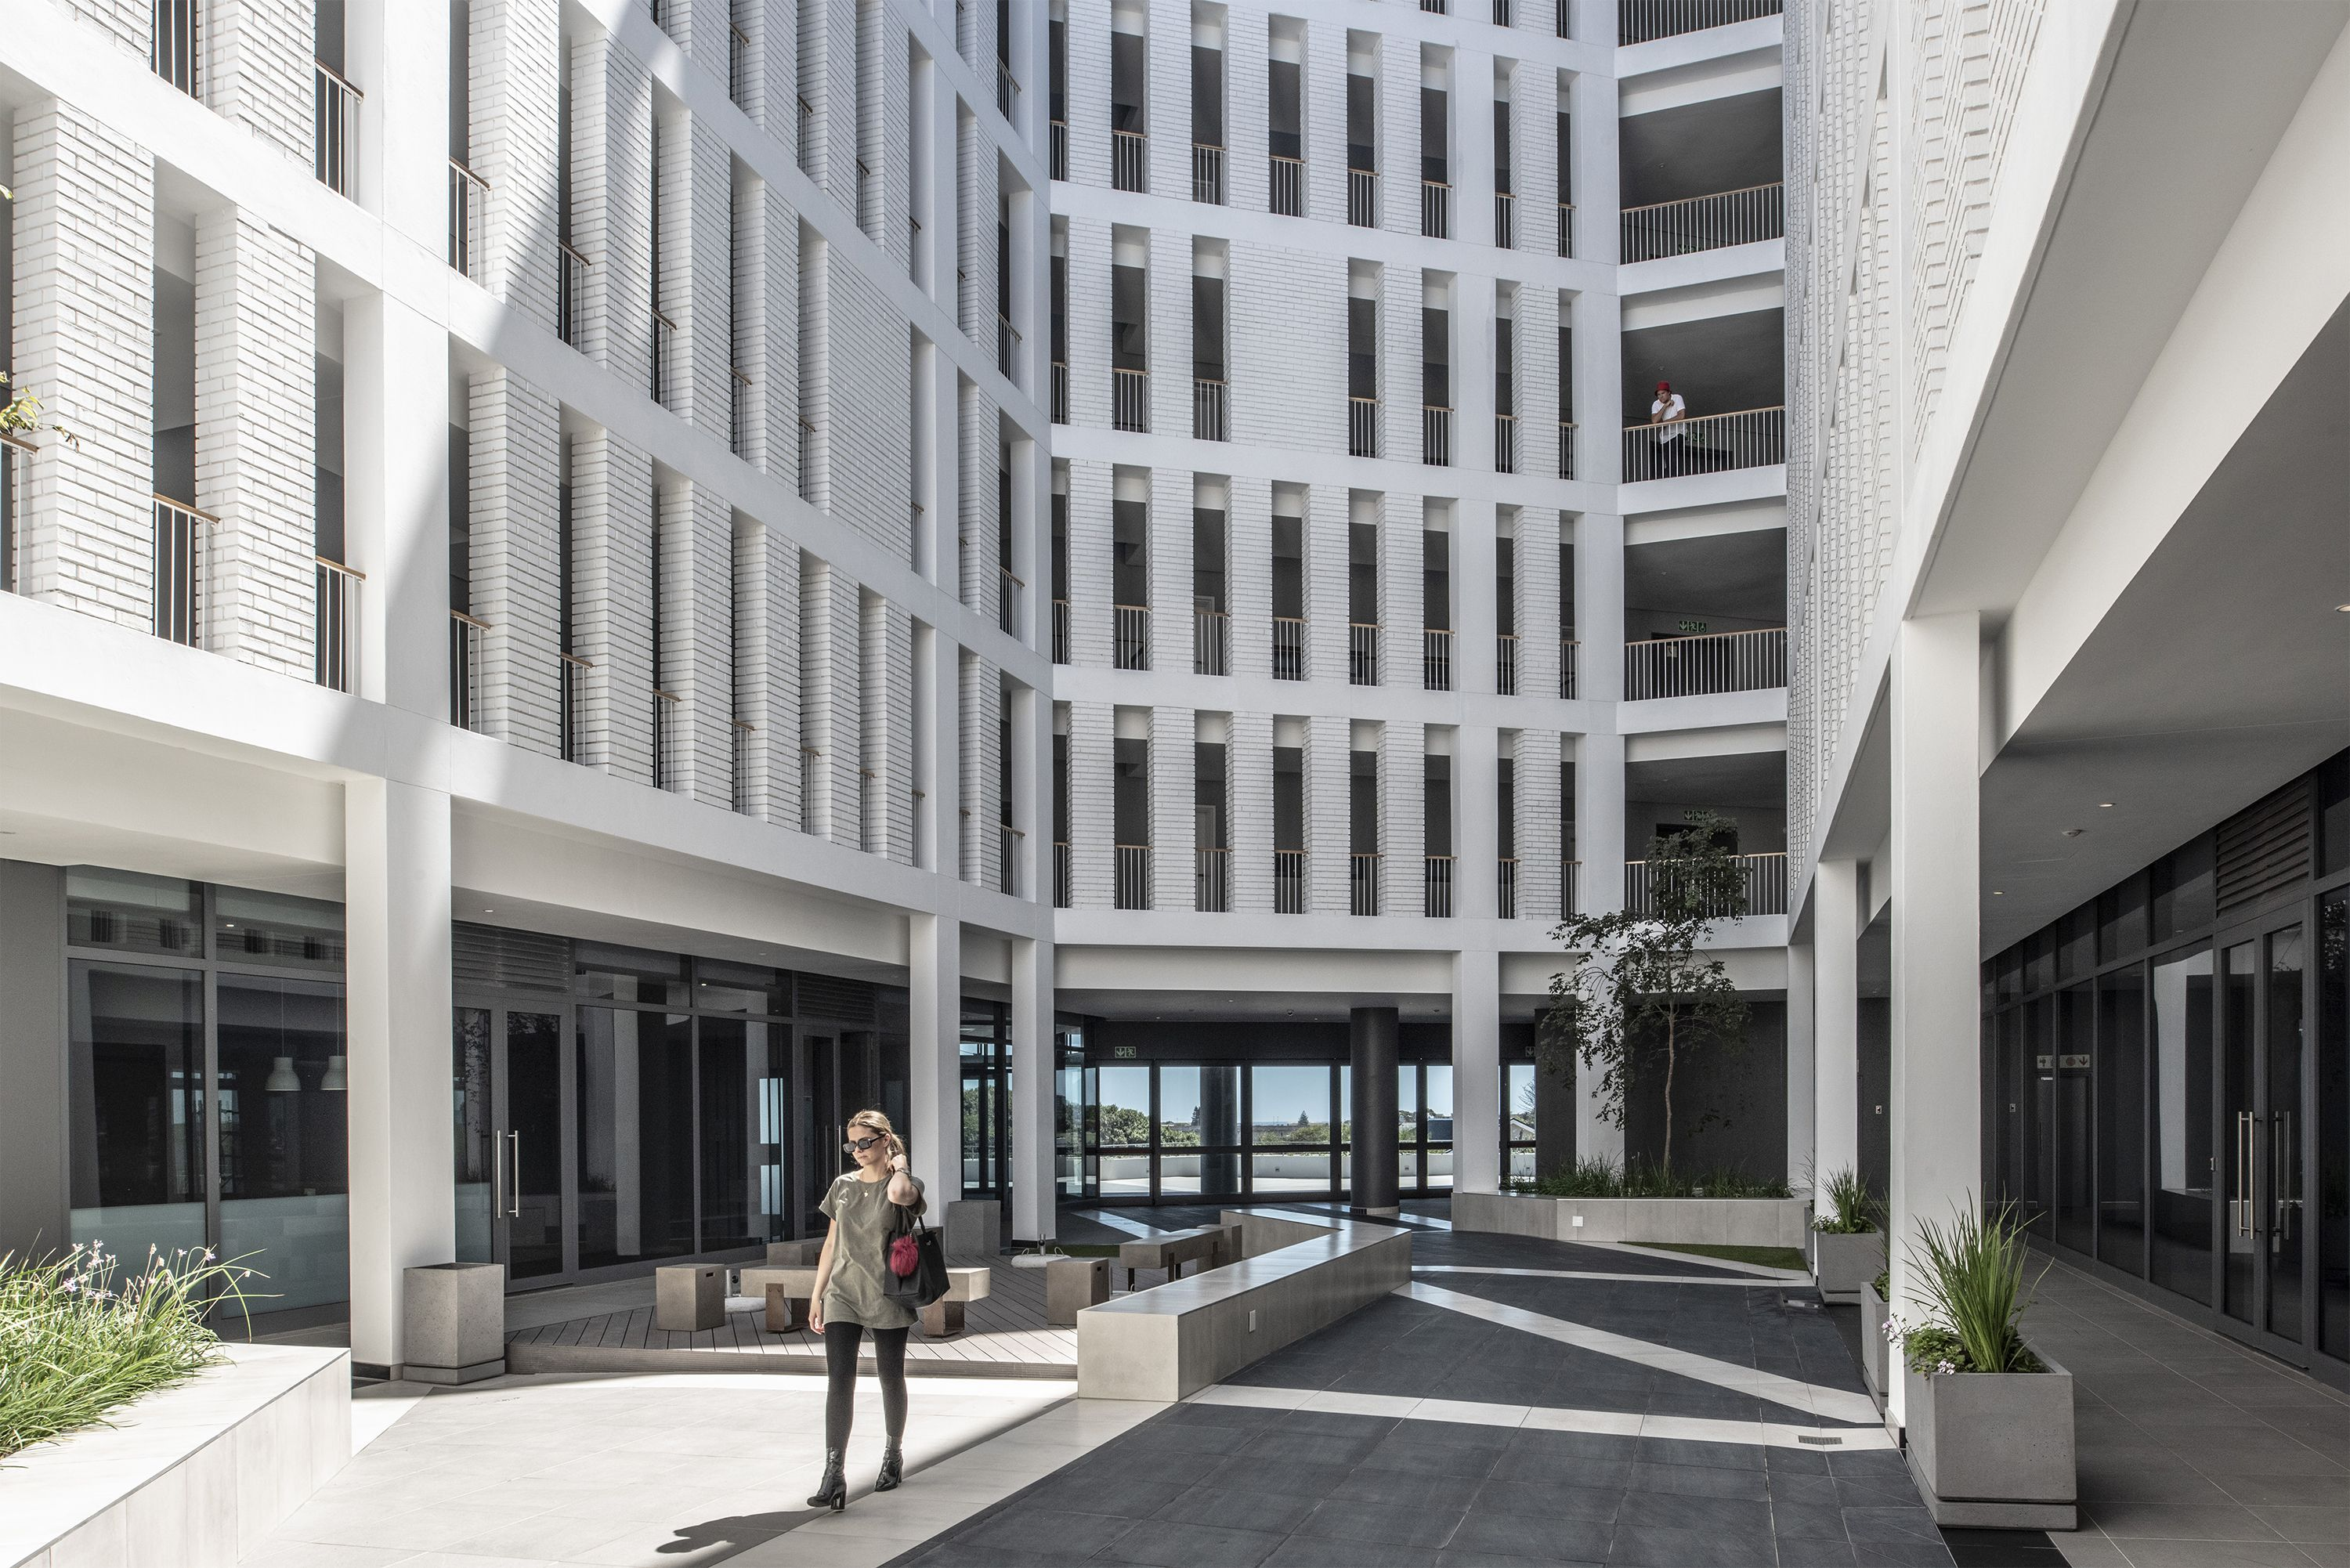 Axis Is The Latest Residential Development In Bridgeways Precinct Of Cape Town S Century City The Apartment Block Compris Luxury Apartments Architect Building